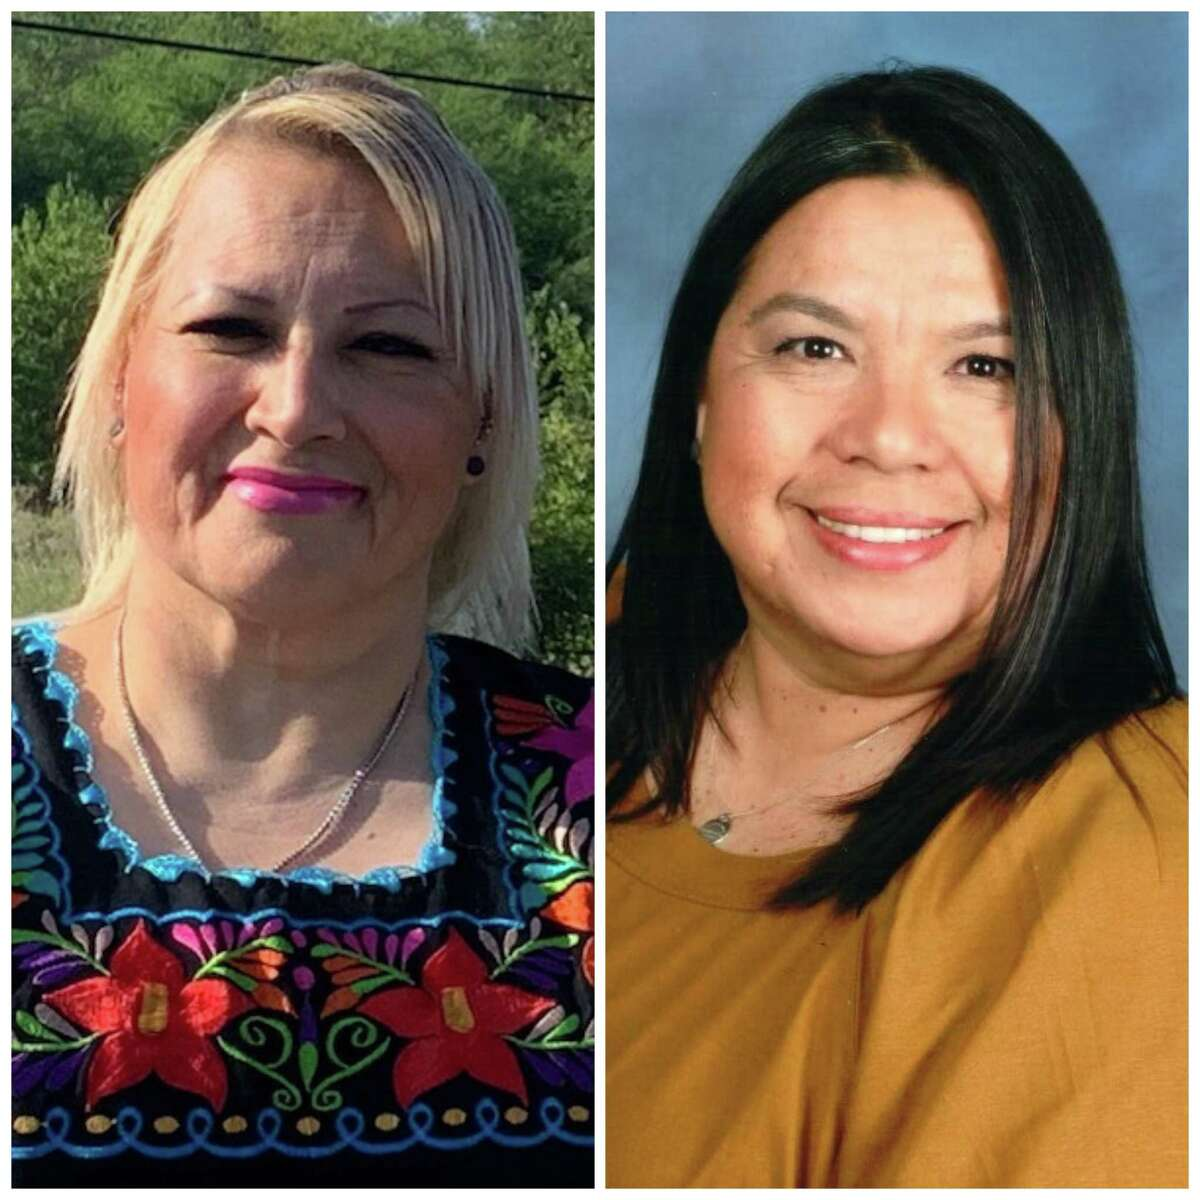 A victory for Gina Villagomez, left, over Veronica Barba for a South San ISD board seat is a welcome change. But more change is needed to put this troubled district on the right path.